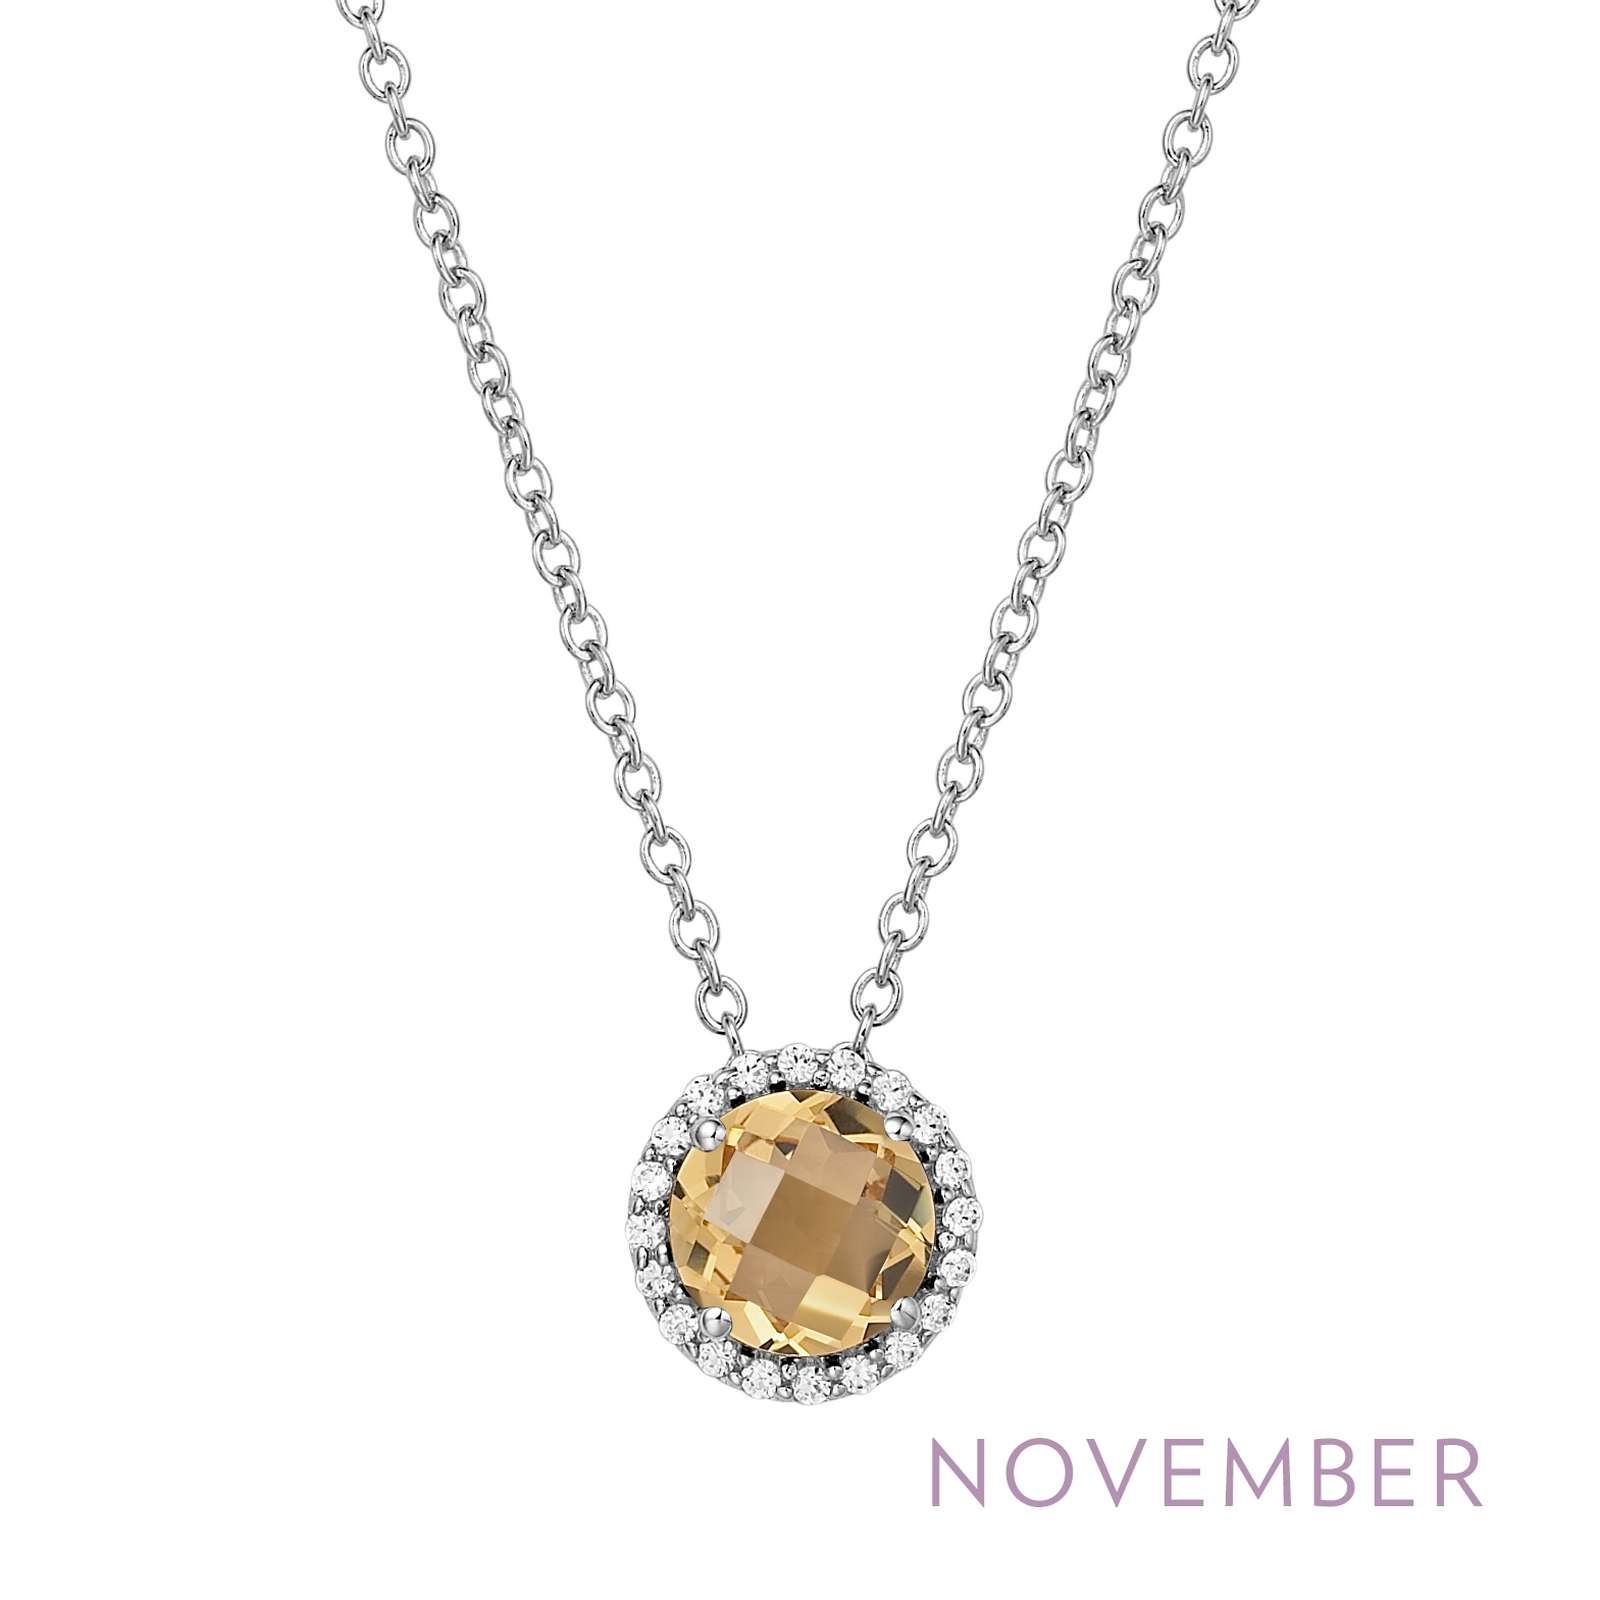 Birthstone November Platinum Bonded Necklace by Lafonn